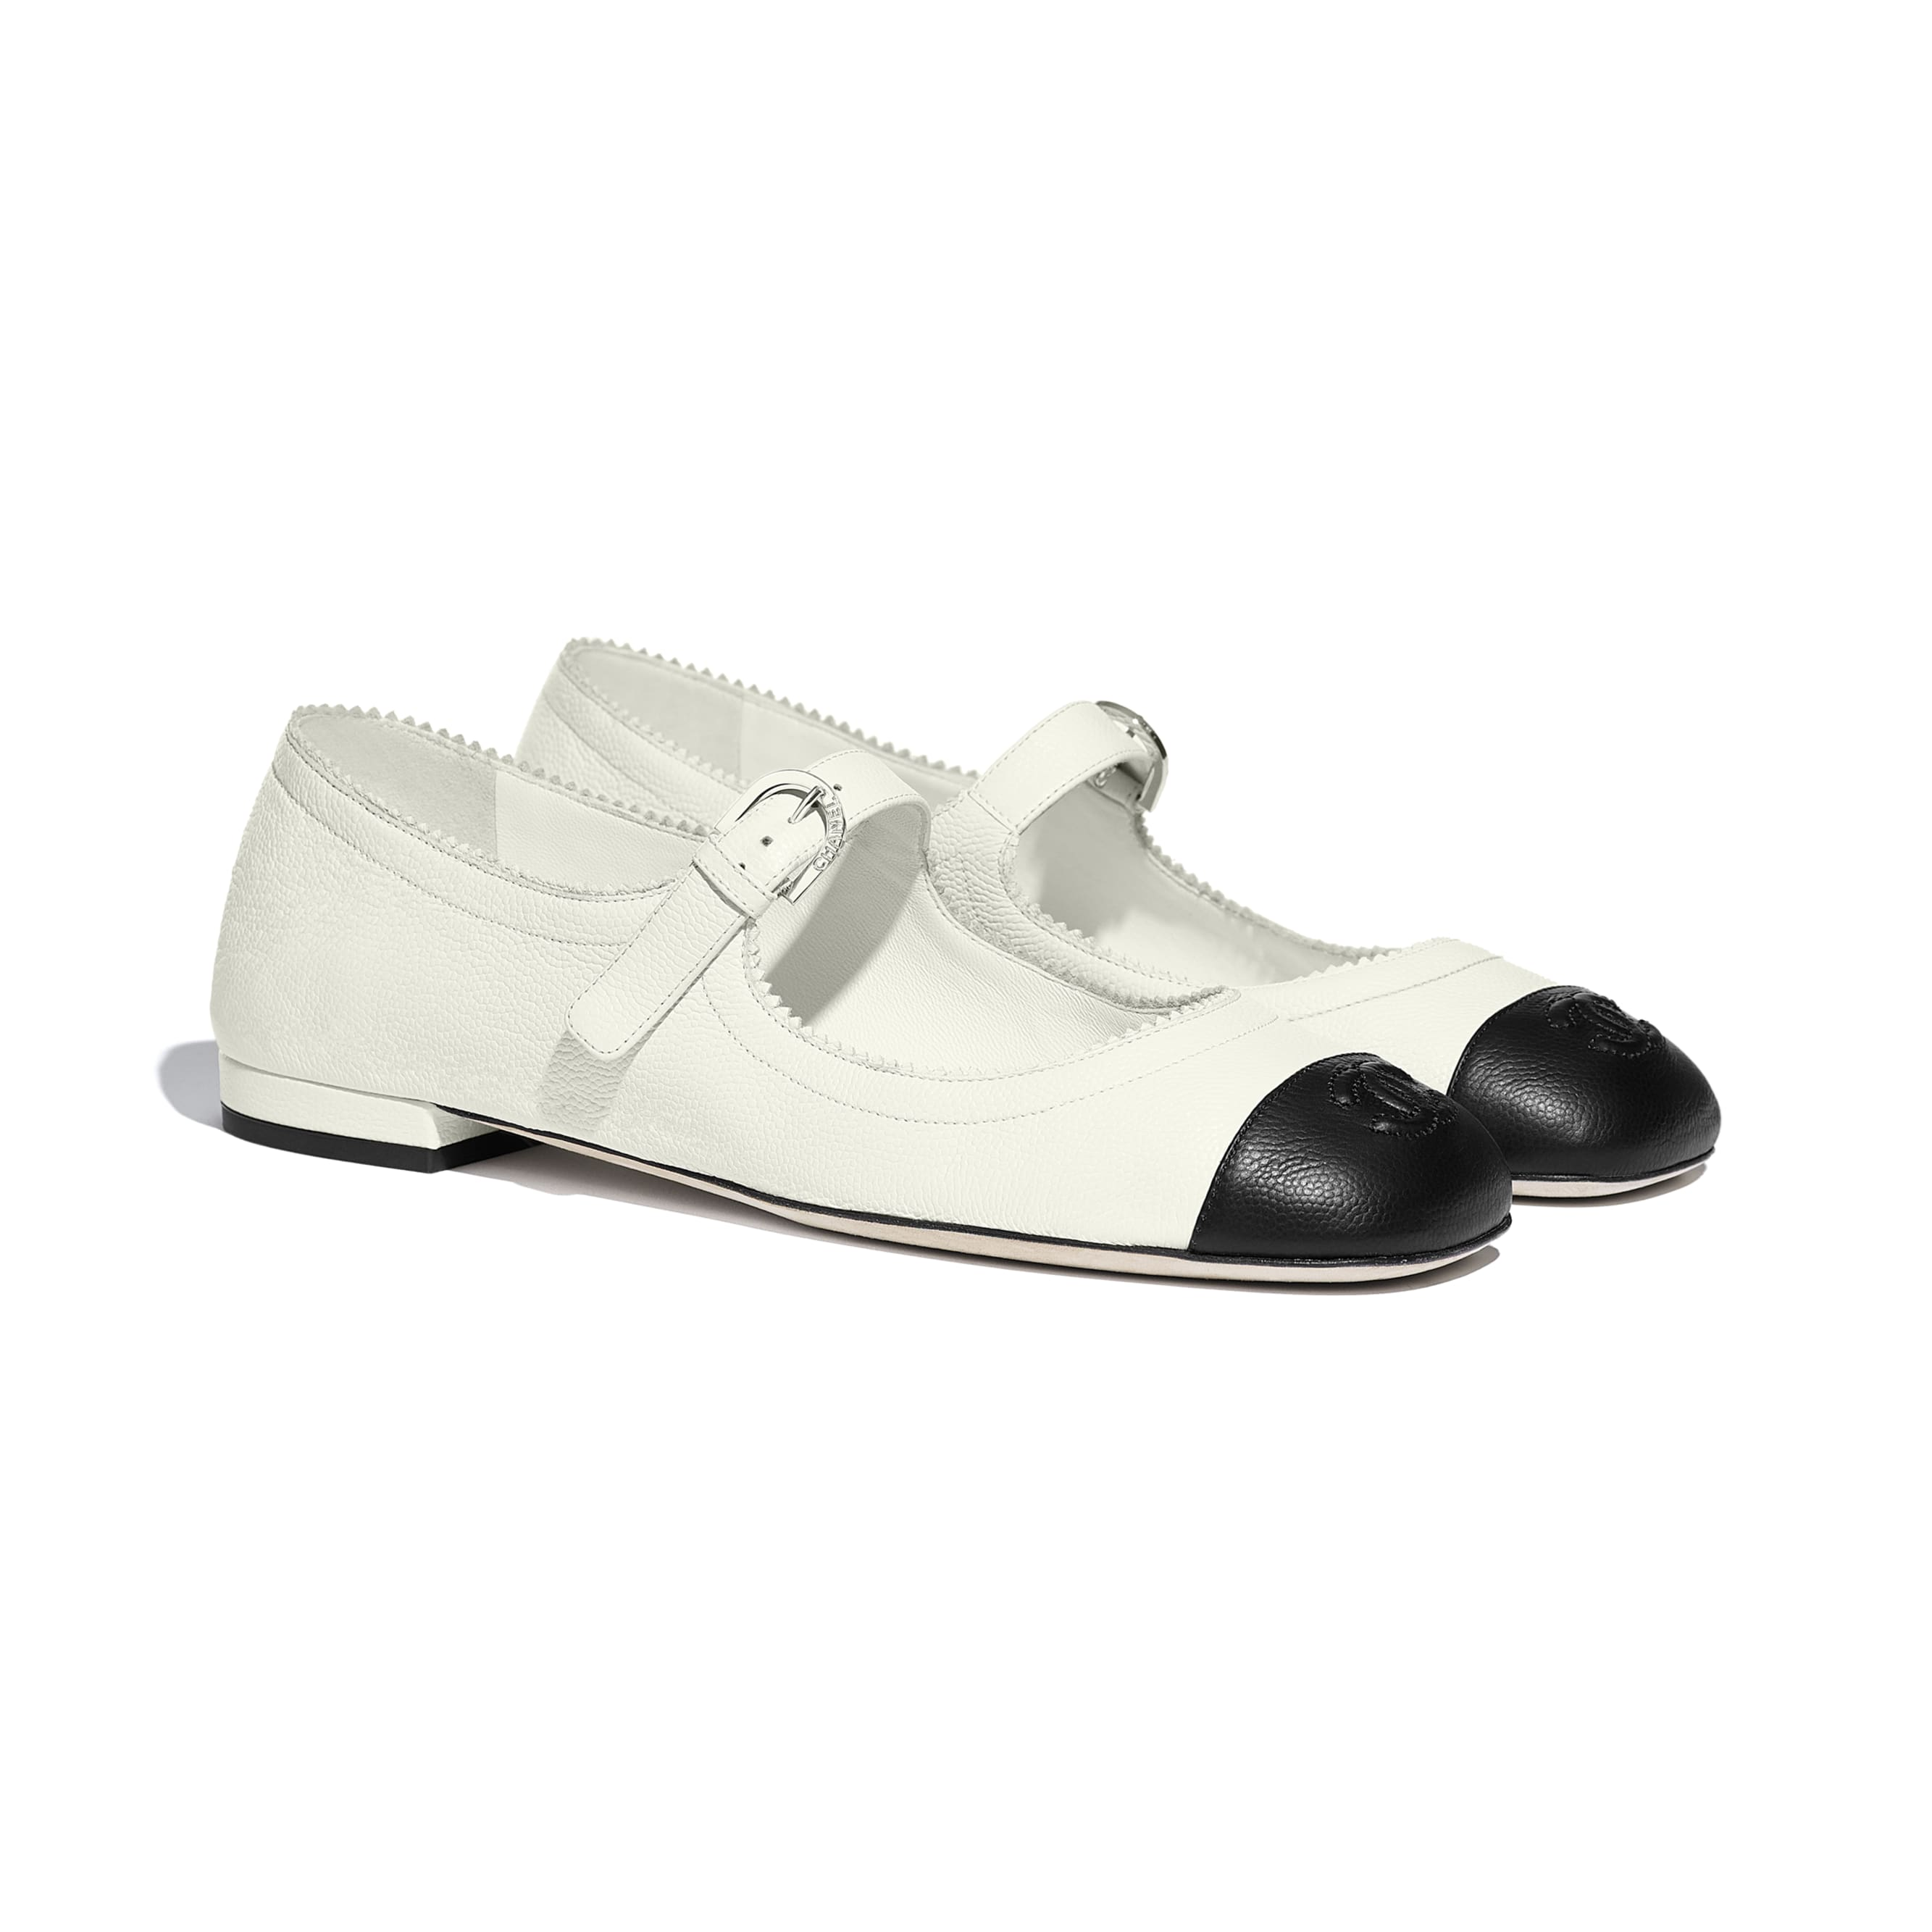 Mary Janes  - White & Black - Calfskin - CHANEL - Alternative view - see standard sized version